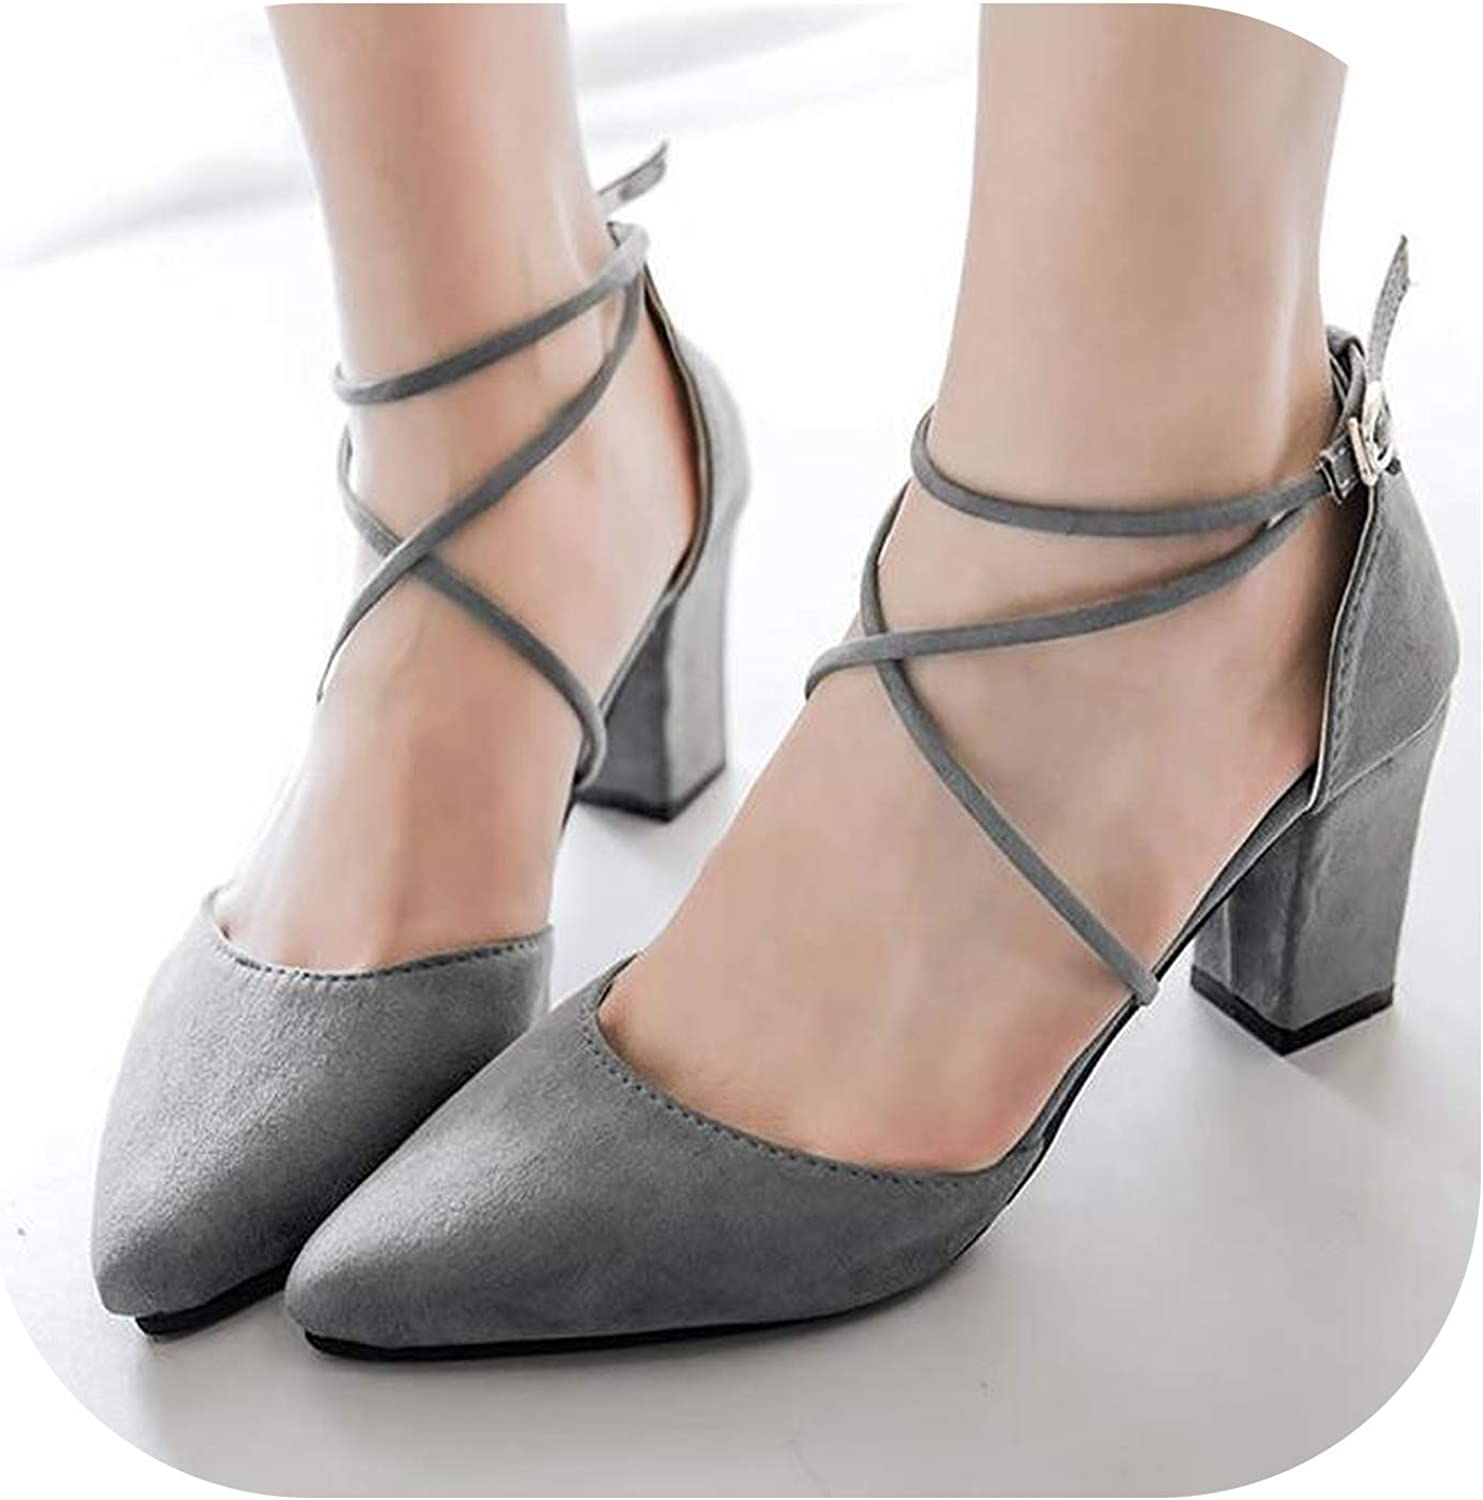 Meiguiyuan 2019 Summer Women's Pointed Toe Fashion shoes Thick Heel high-Heeled shoes Button Sandals